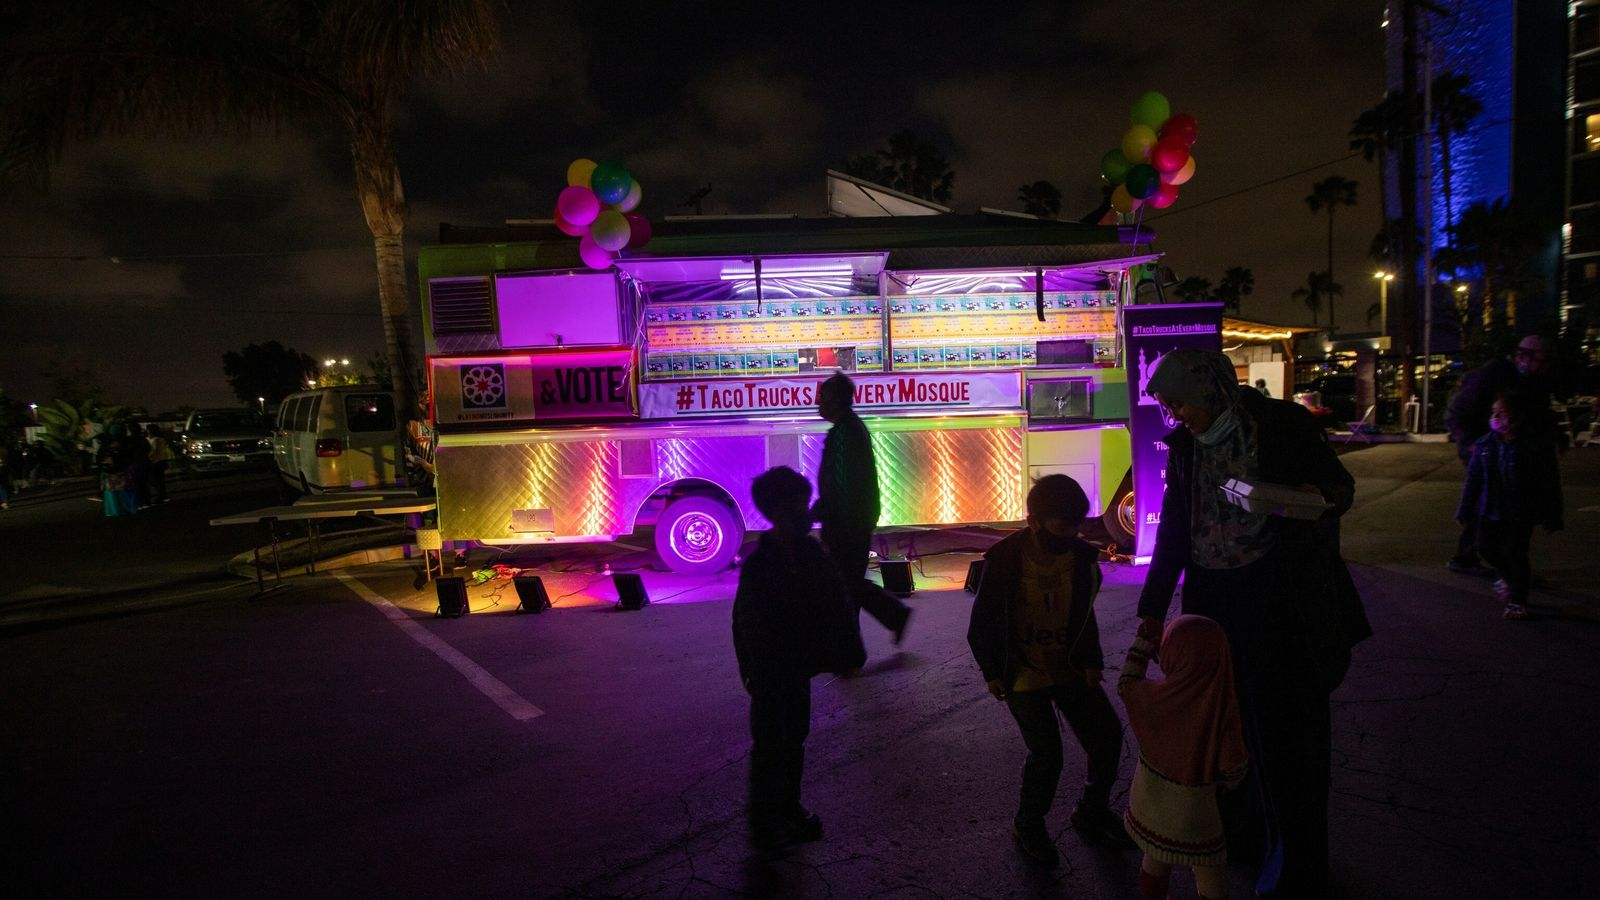 COVID vaccine/taco truck party at a mosque